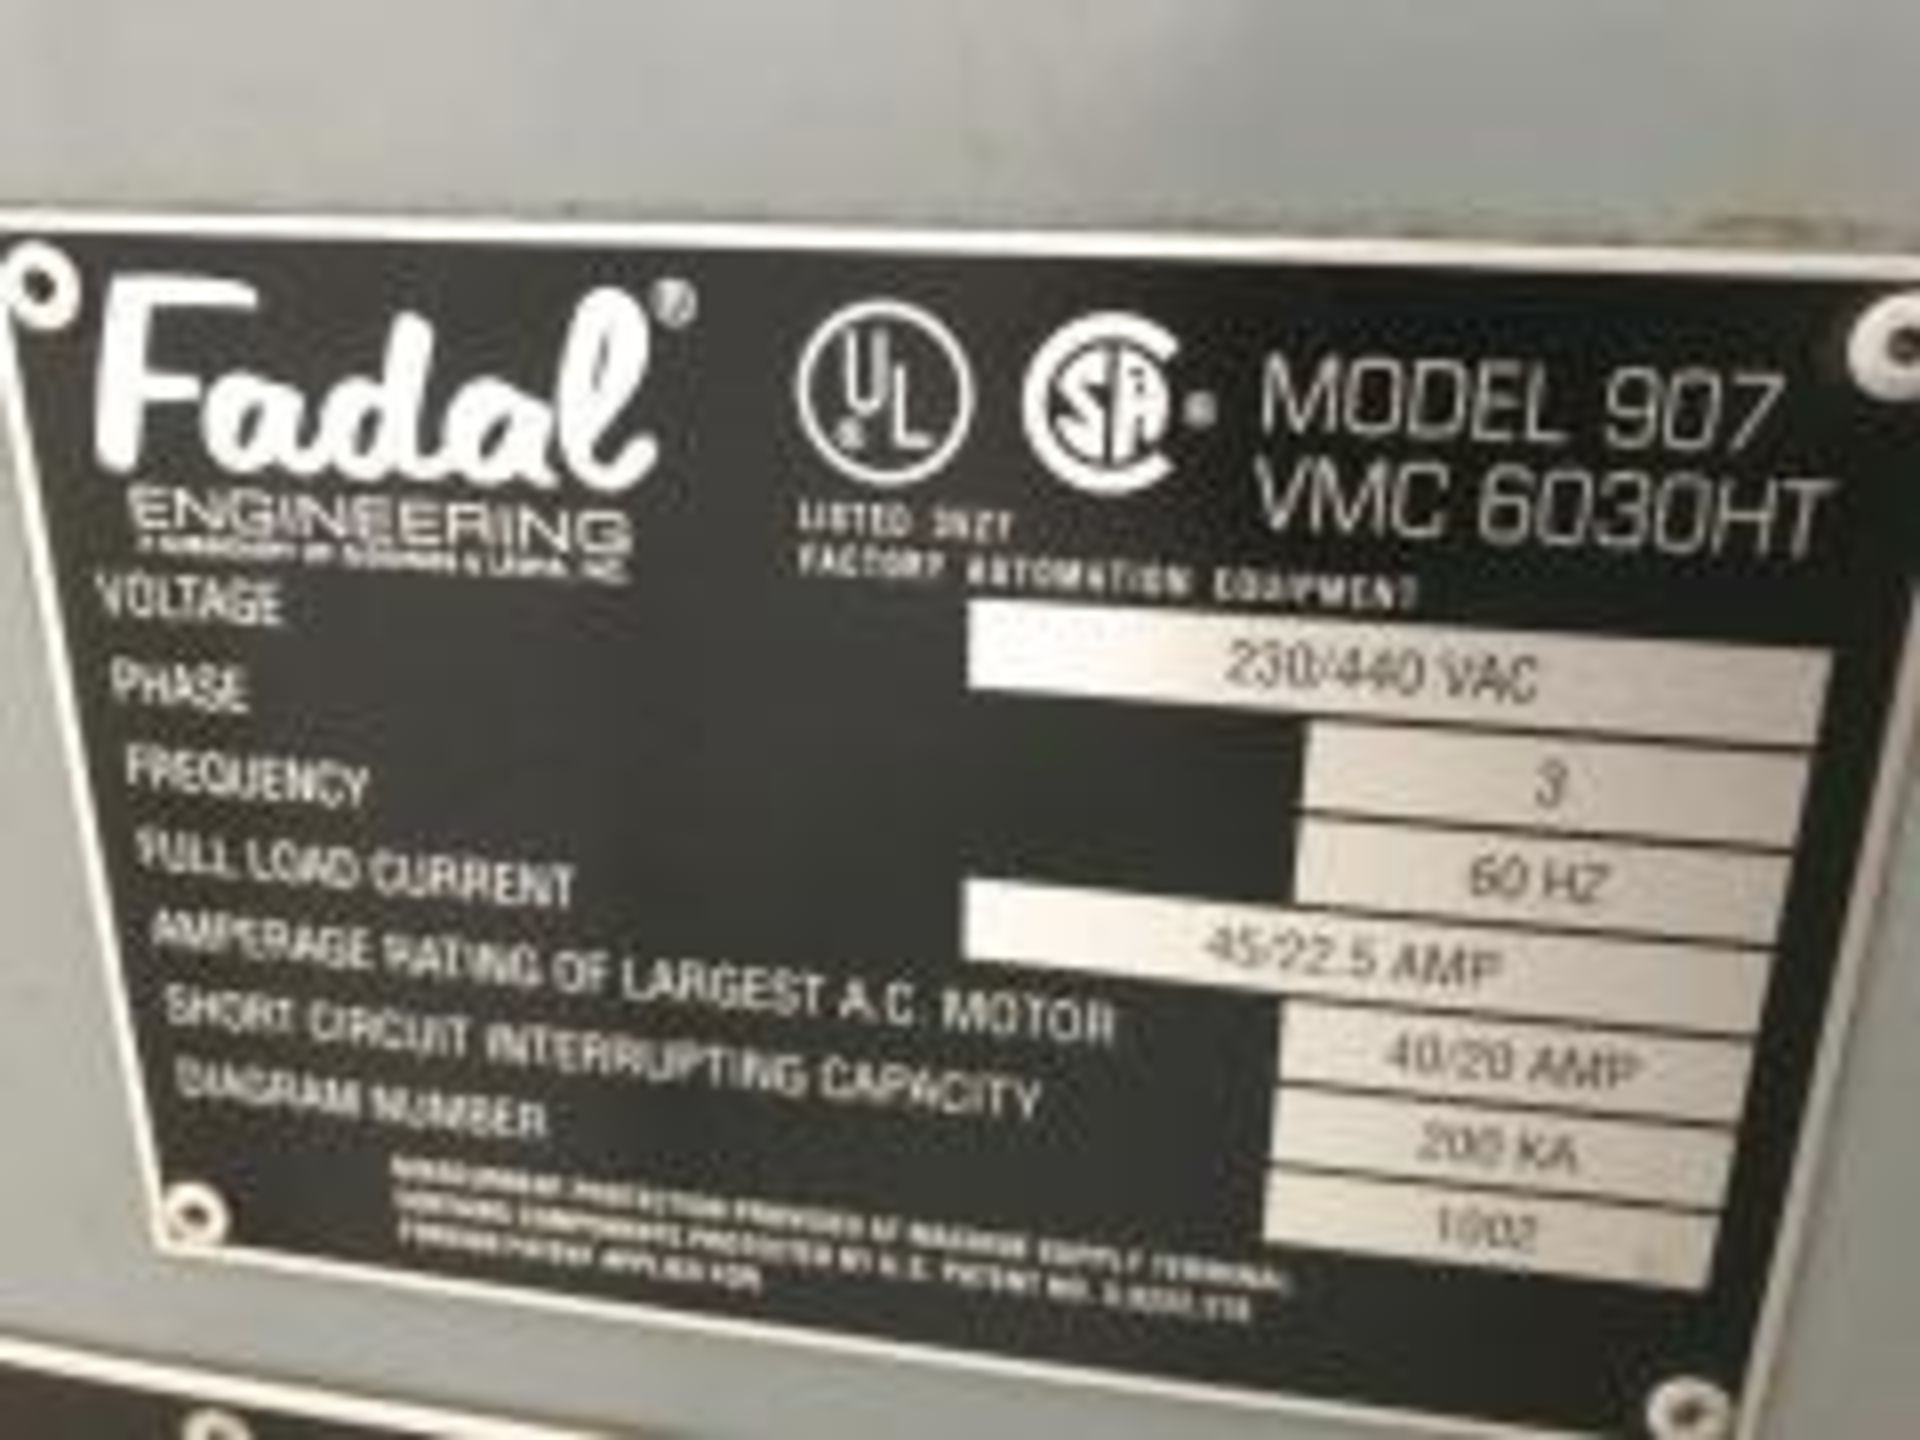 Fadal 6030 CNC Vertical Machining Center - Image 12 of 12